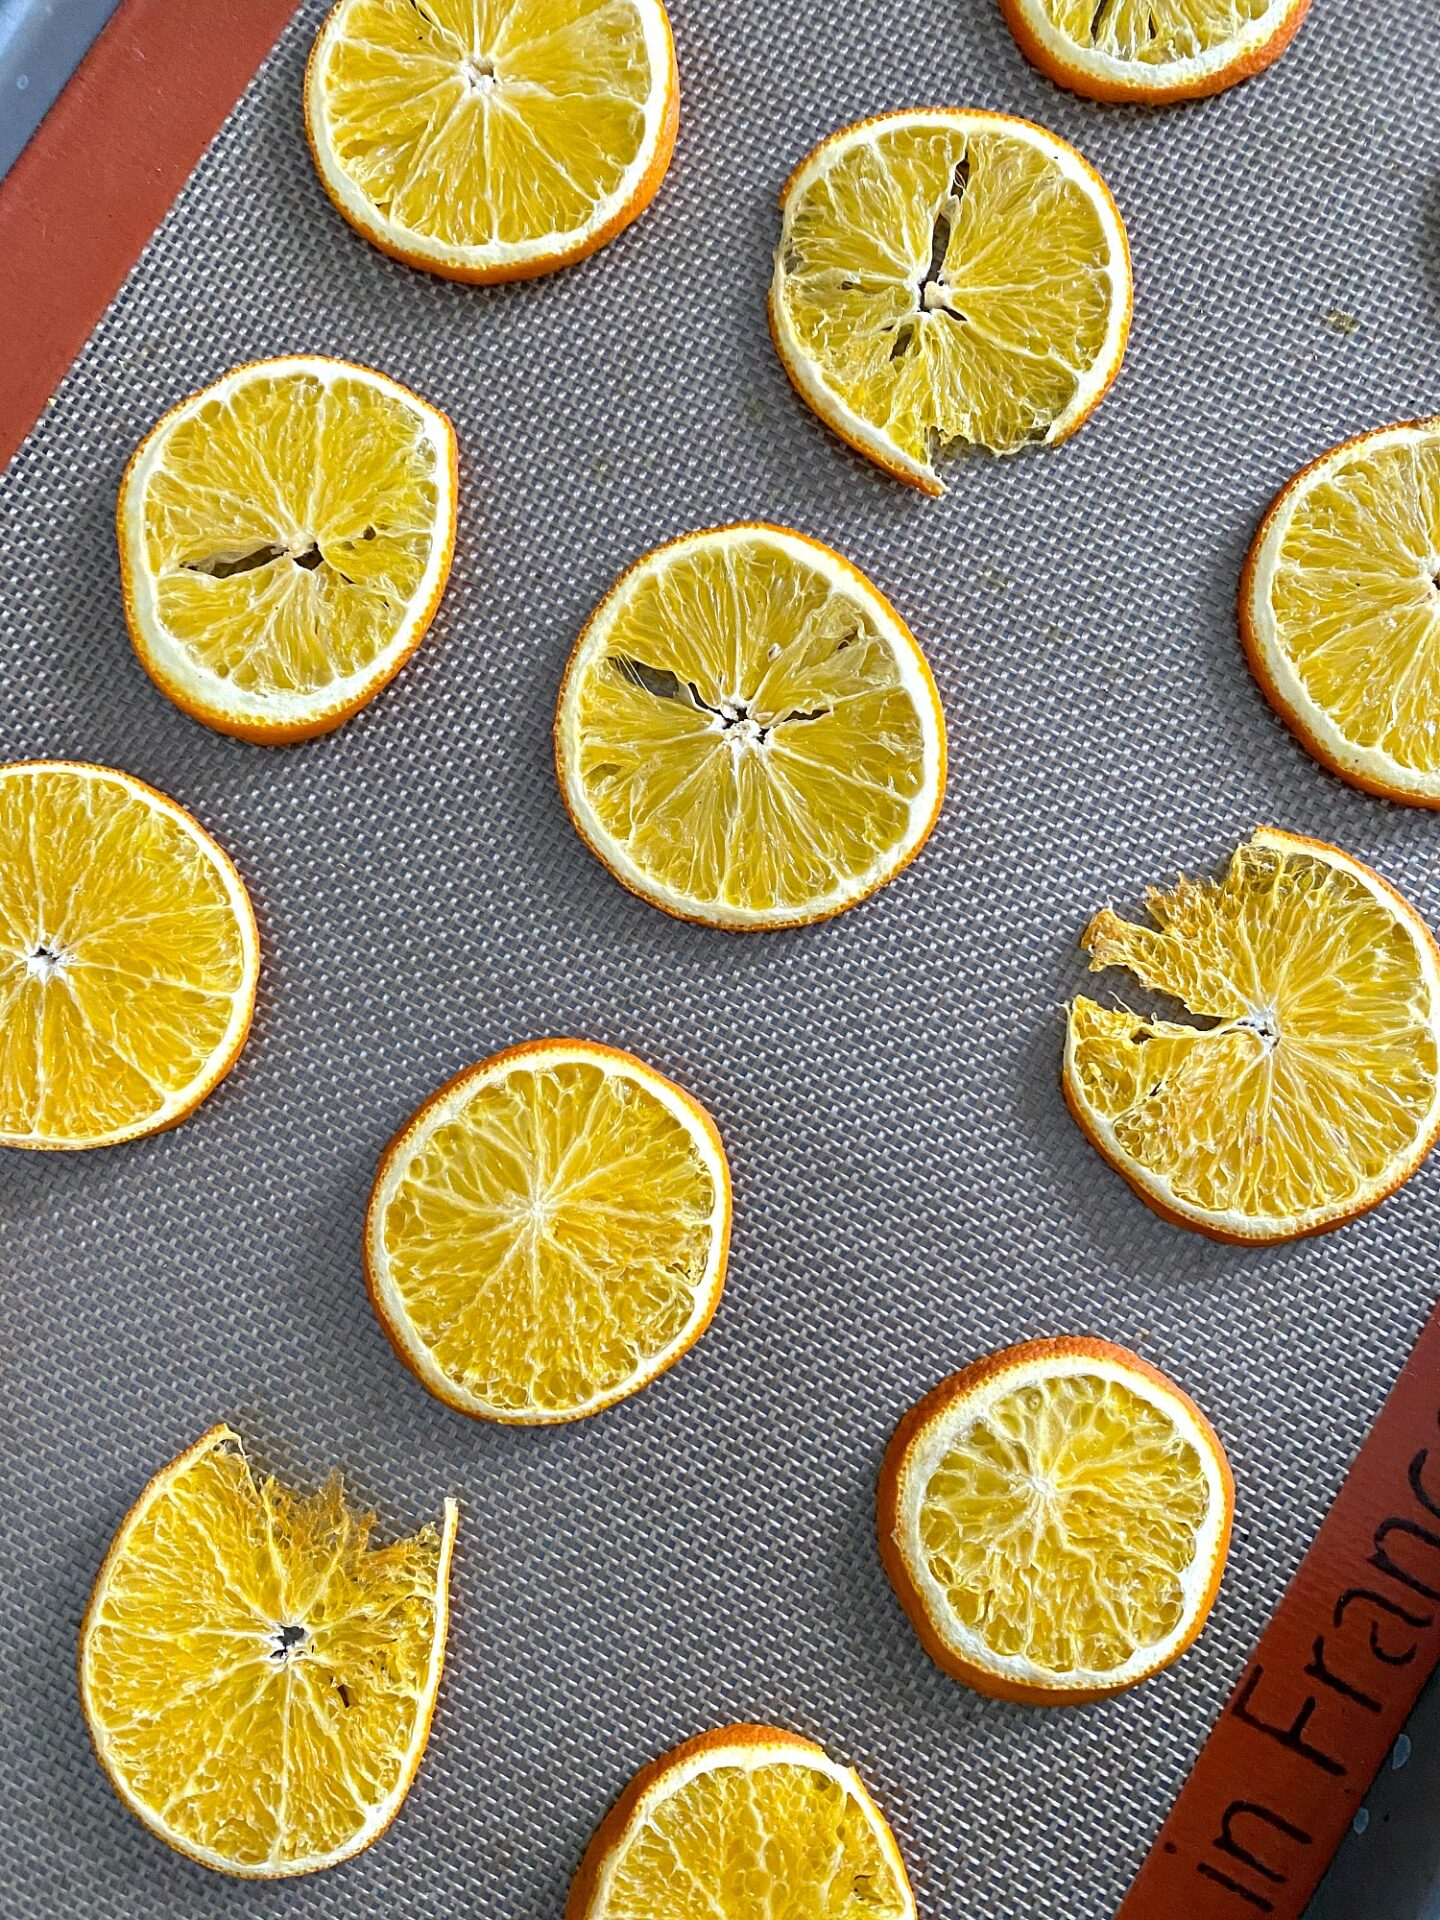 How to Dry Orange Slices in the Oven